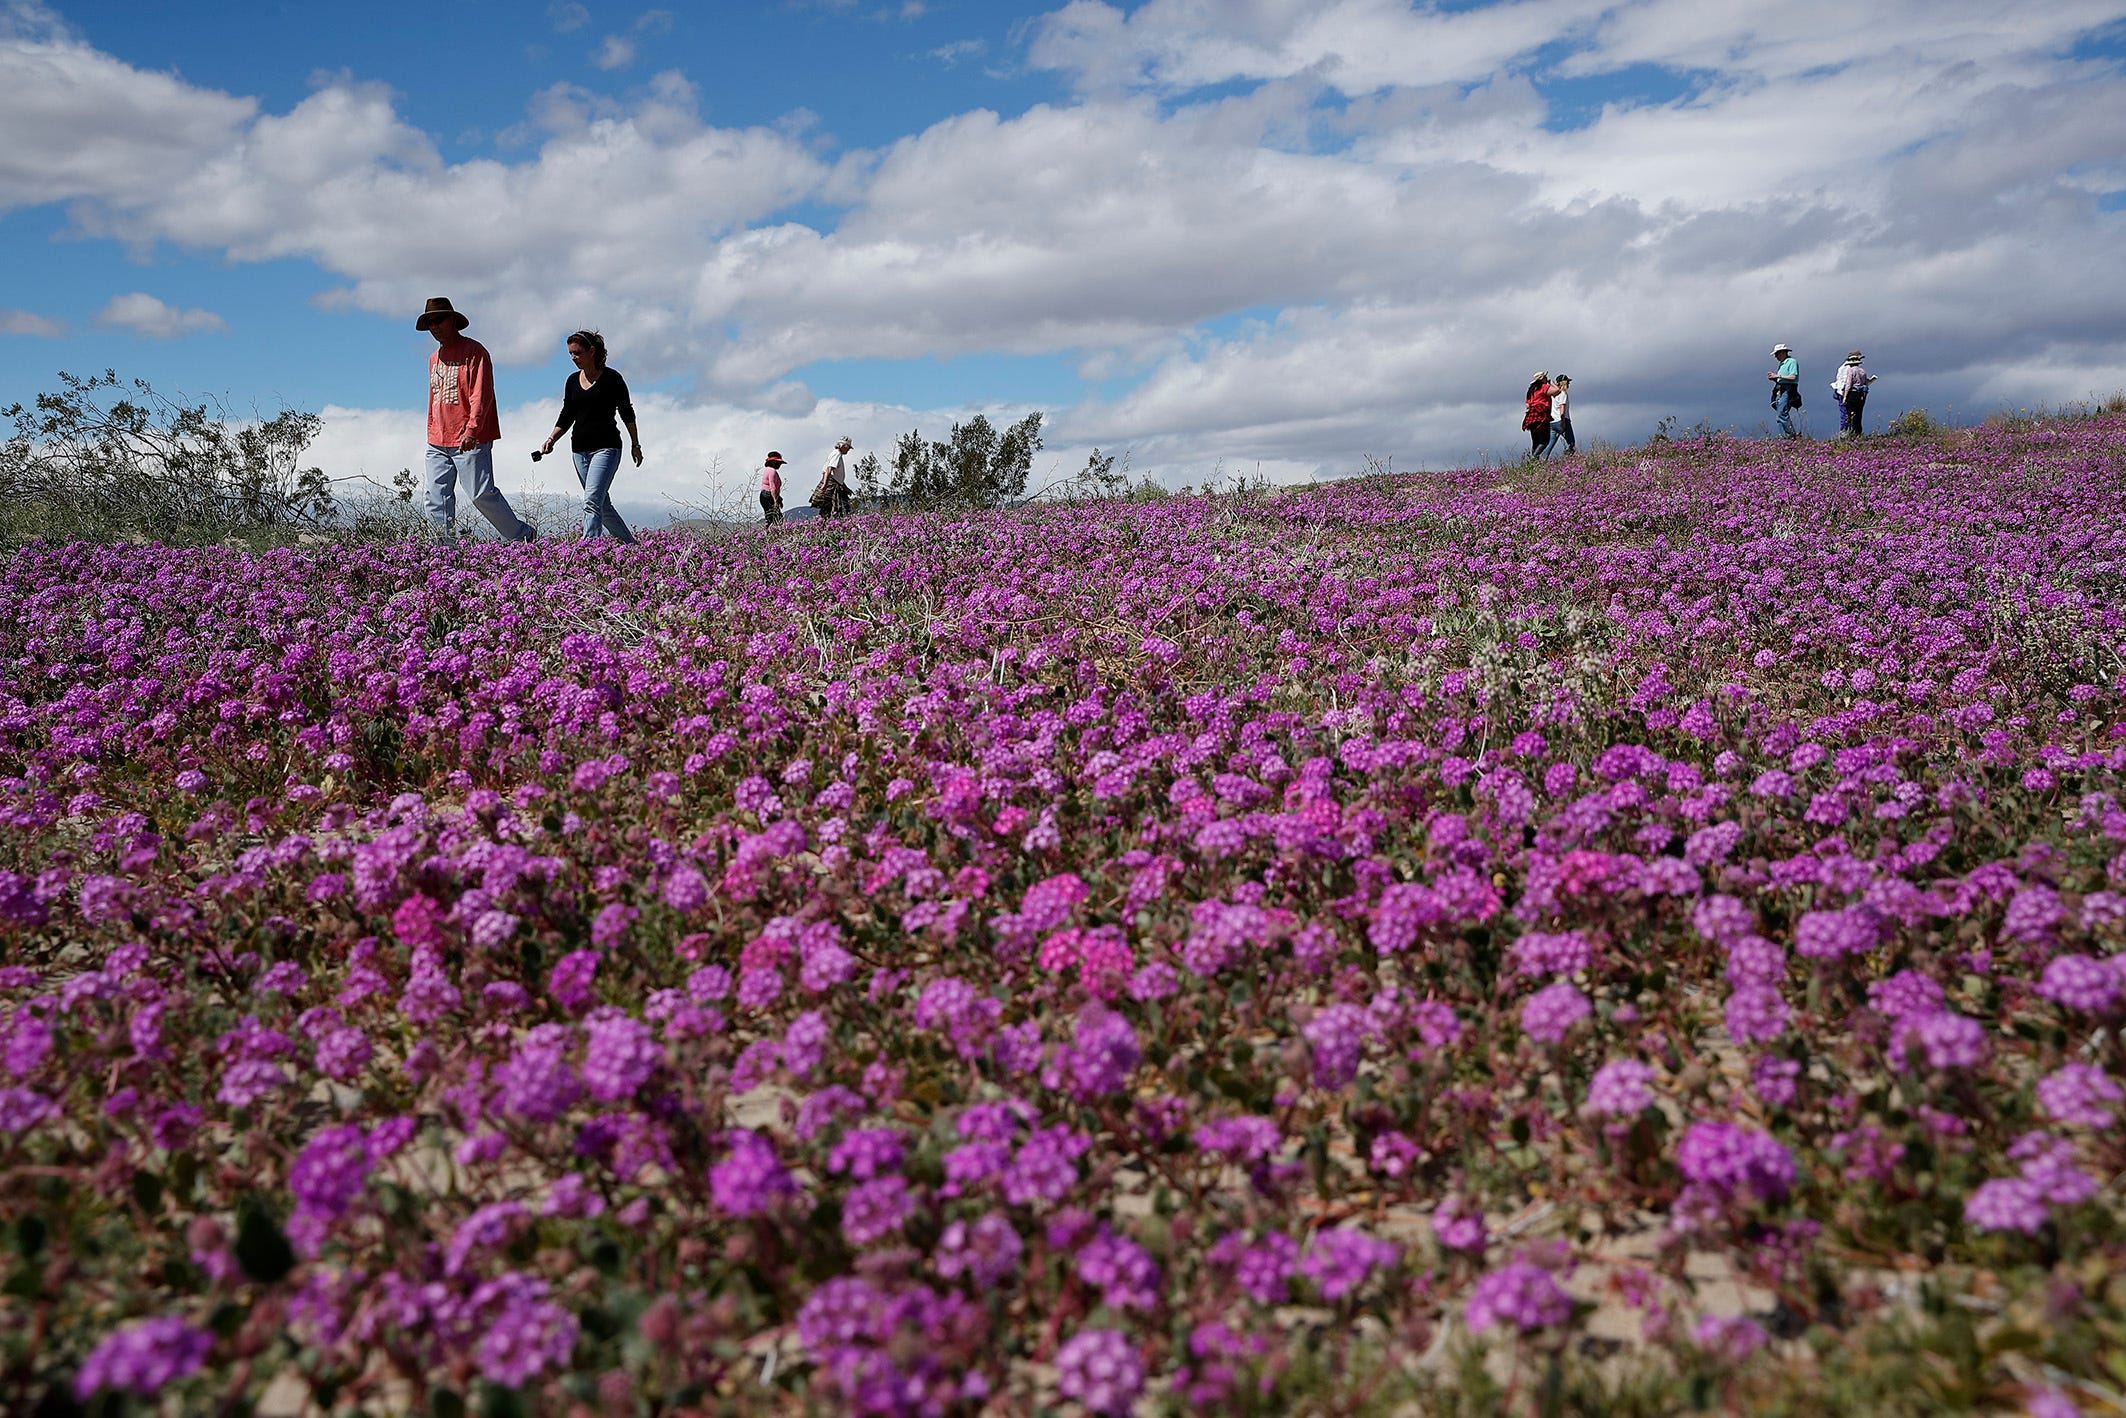 California 'super bloom' brings wildflowers to the desert